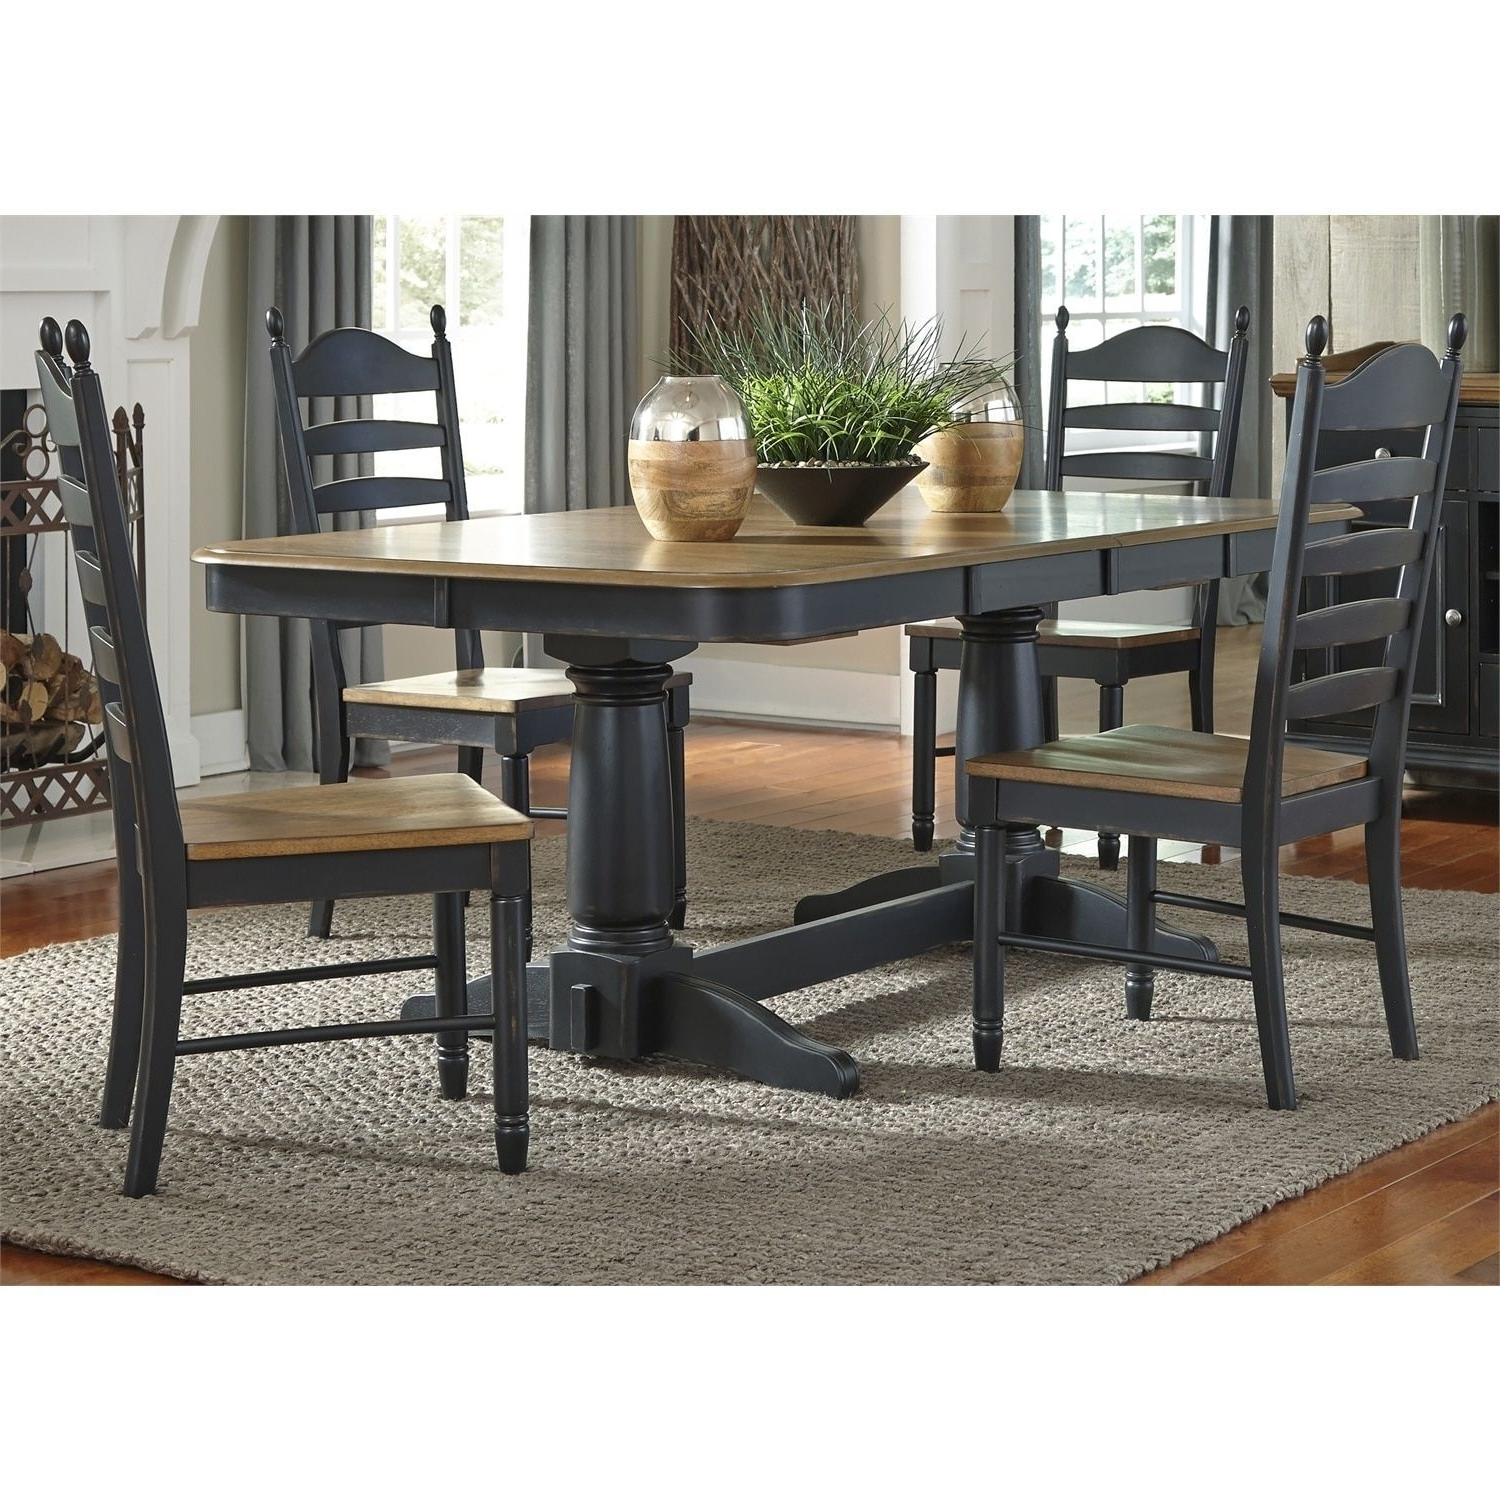 Craftsman 7 Piece Rectangular Extension Dining Sets With Arm & Uph Side Chairs Throughout Most Current Liberty Springfield Ii Honey And Black Double Pedestal 5 Piece (View 21 of 25)